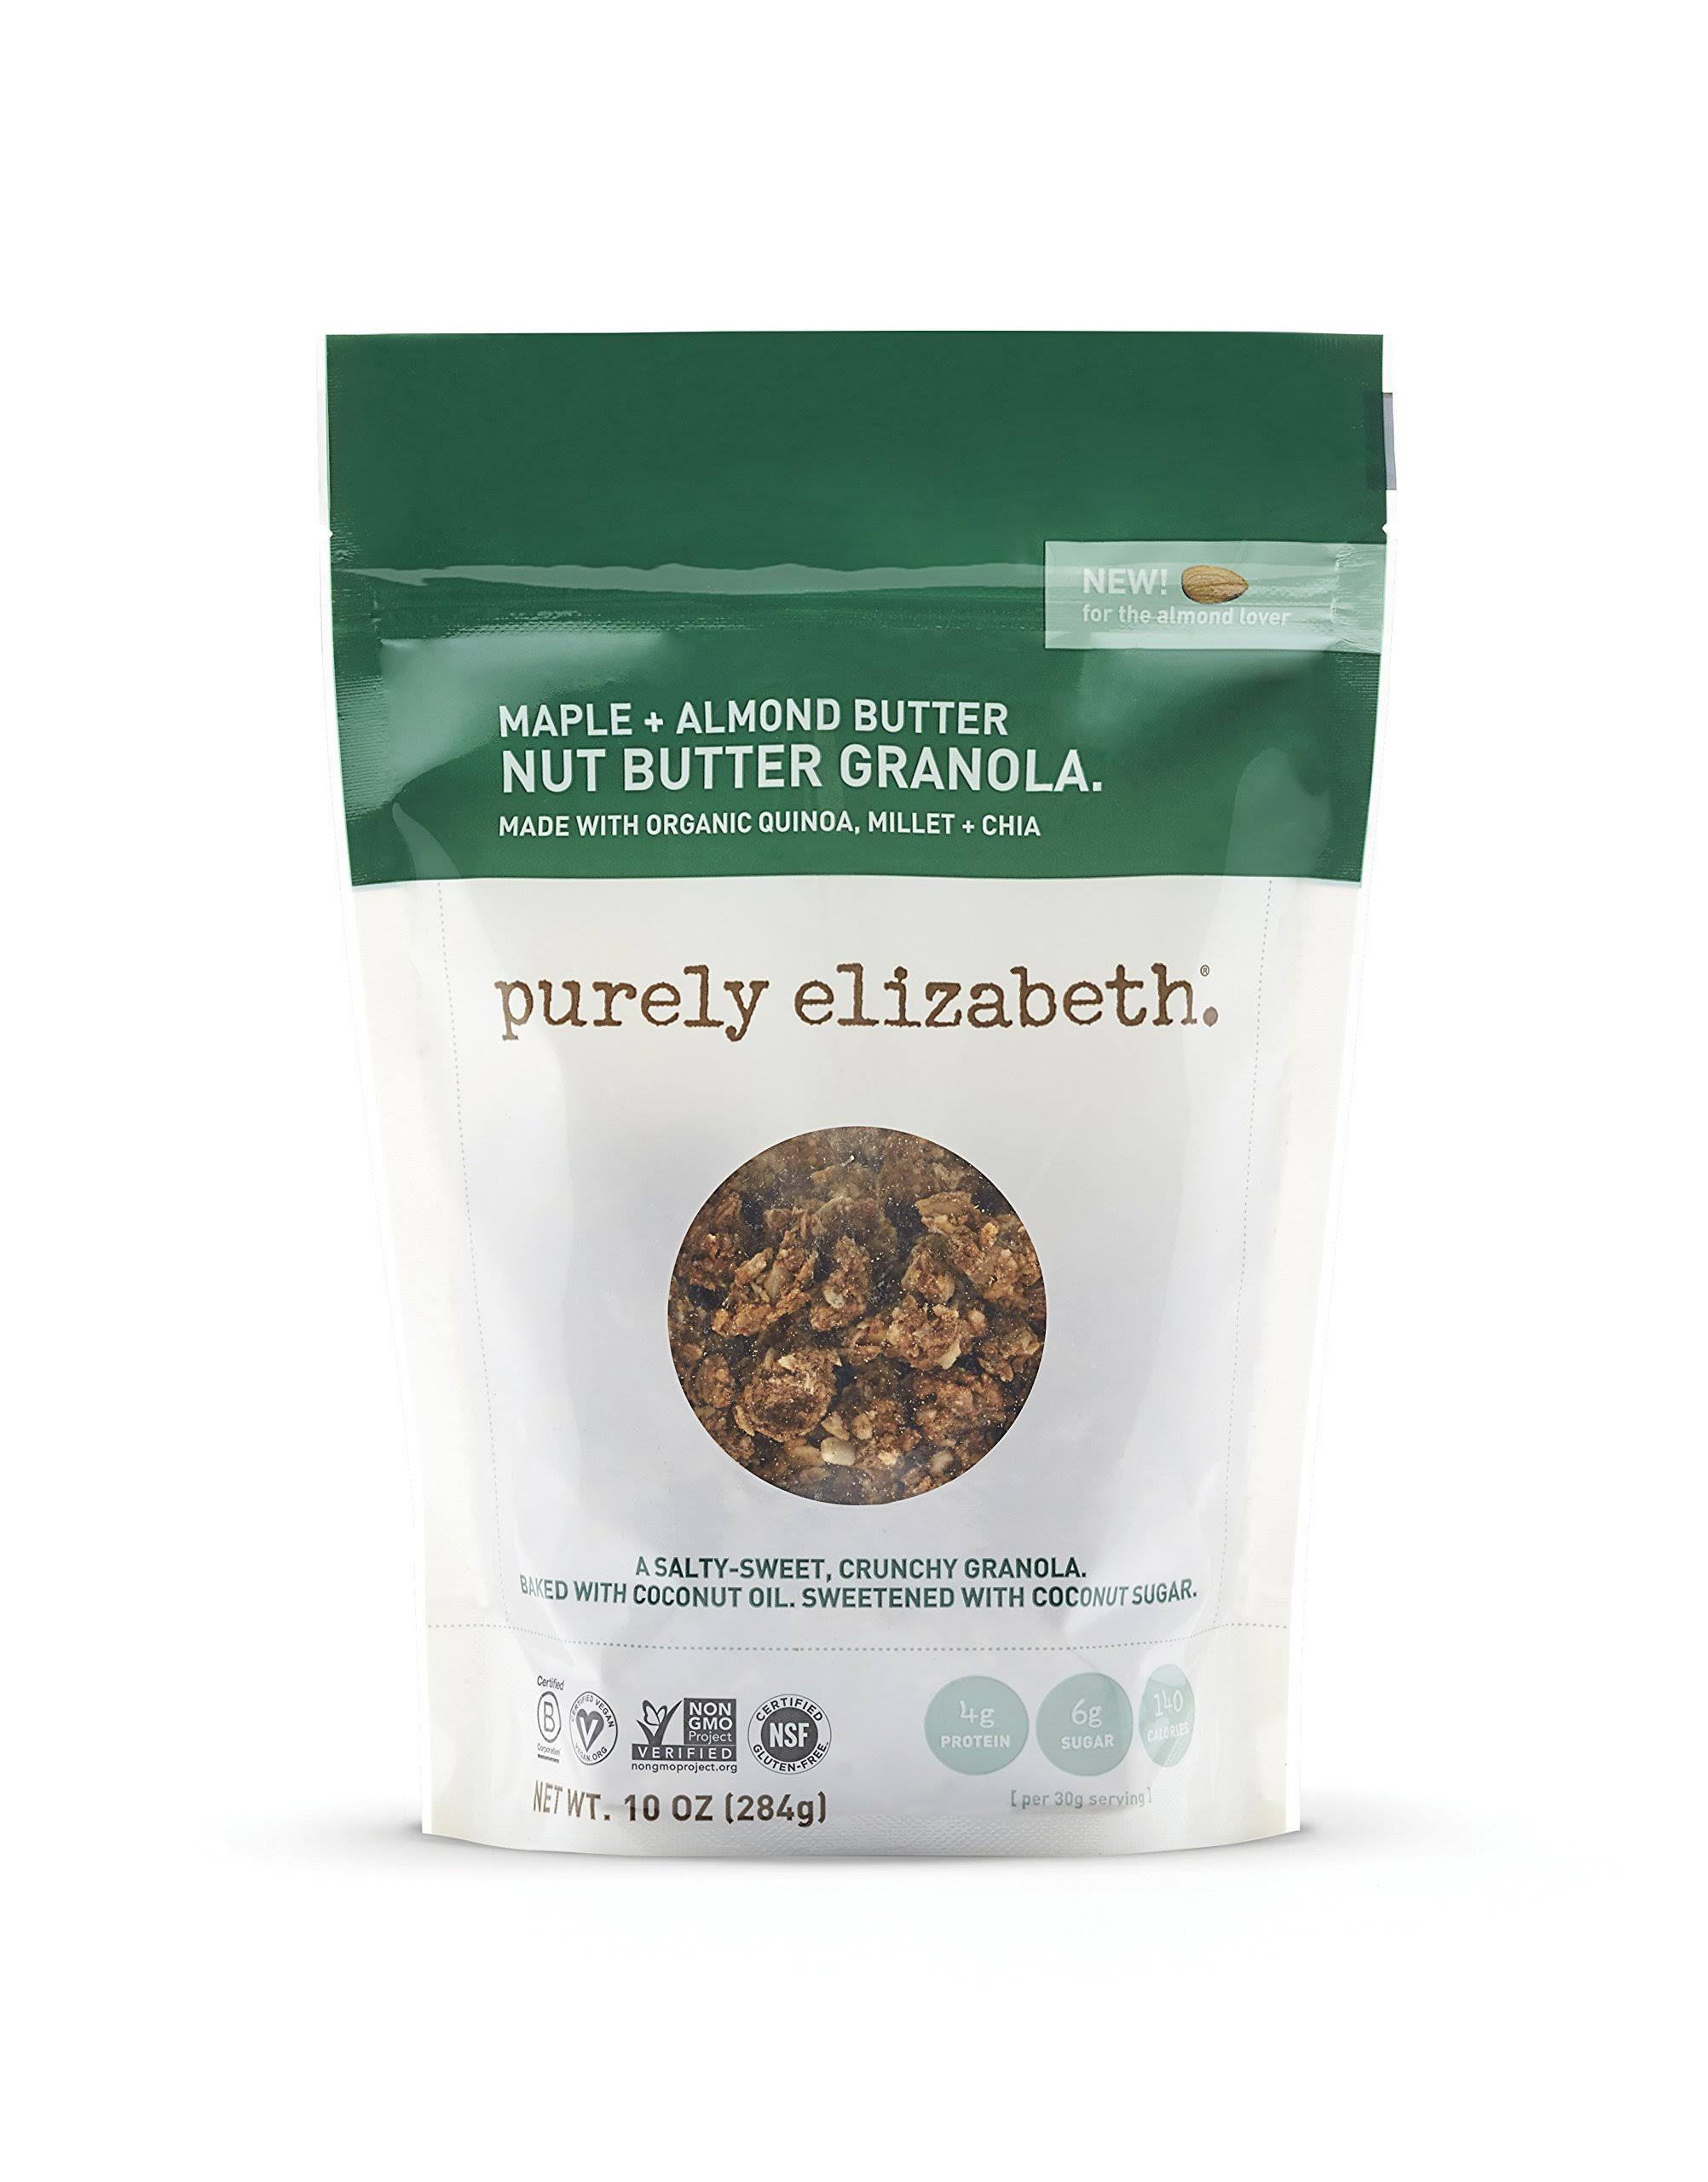 Purely Elizabeth Maple & Almond Butter Nut Butter Granola - 10oz